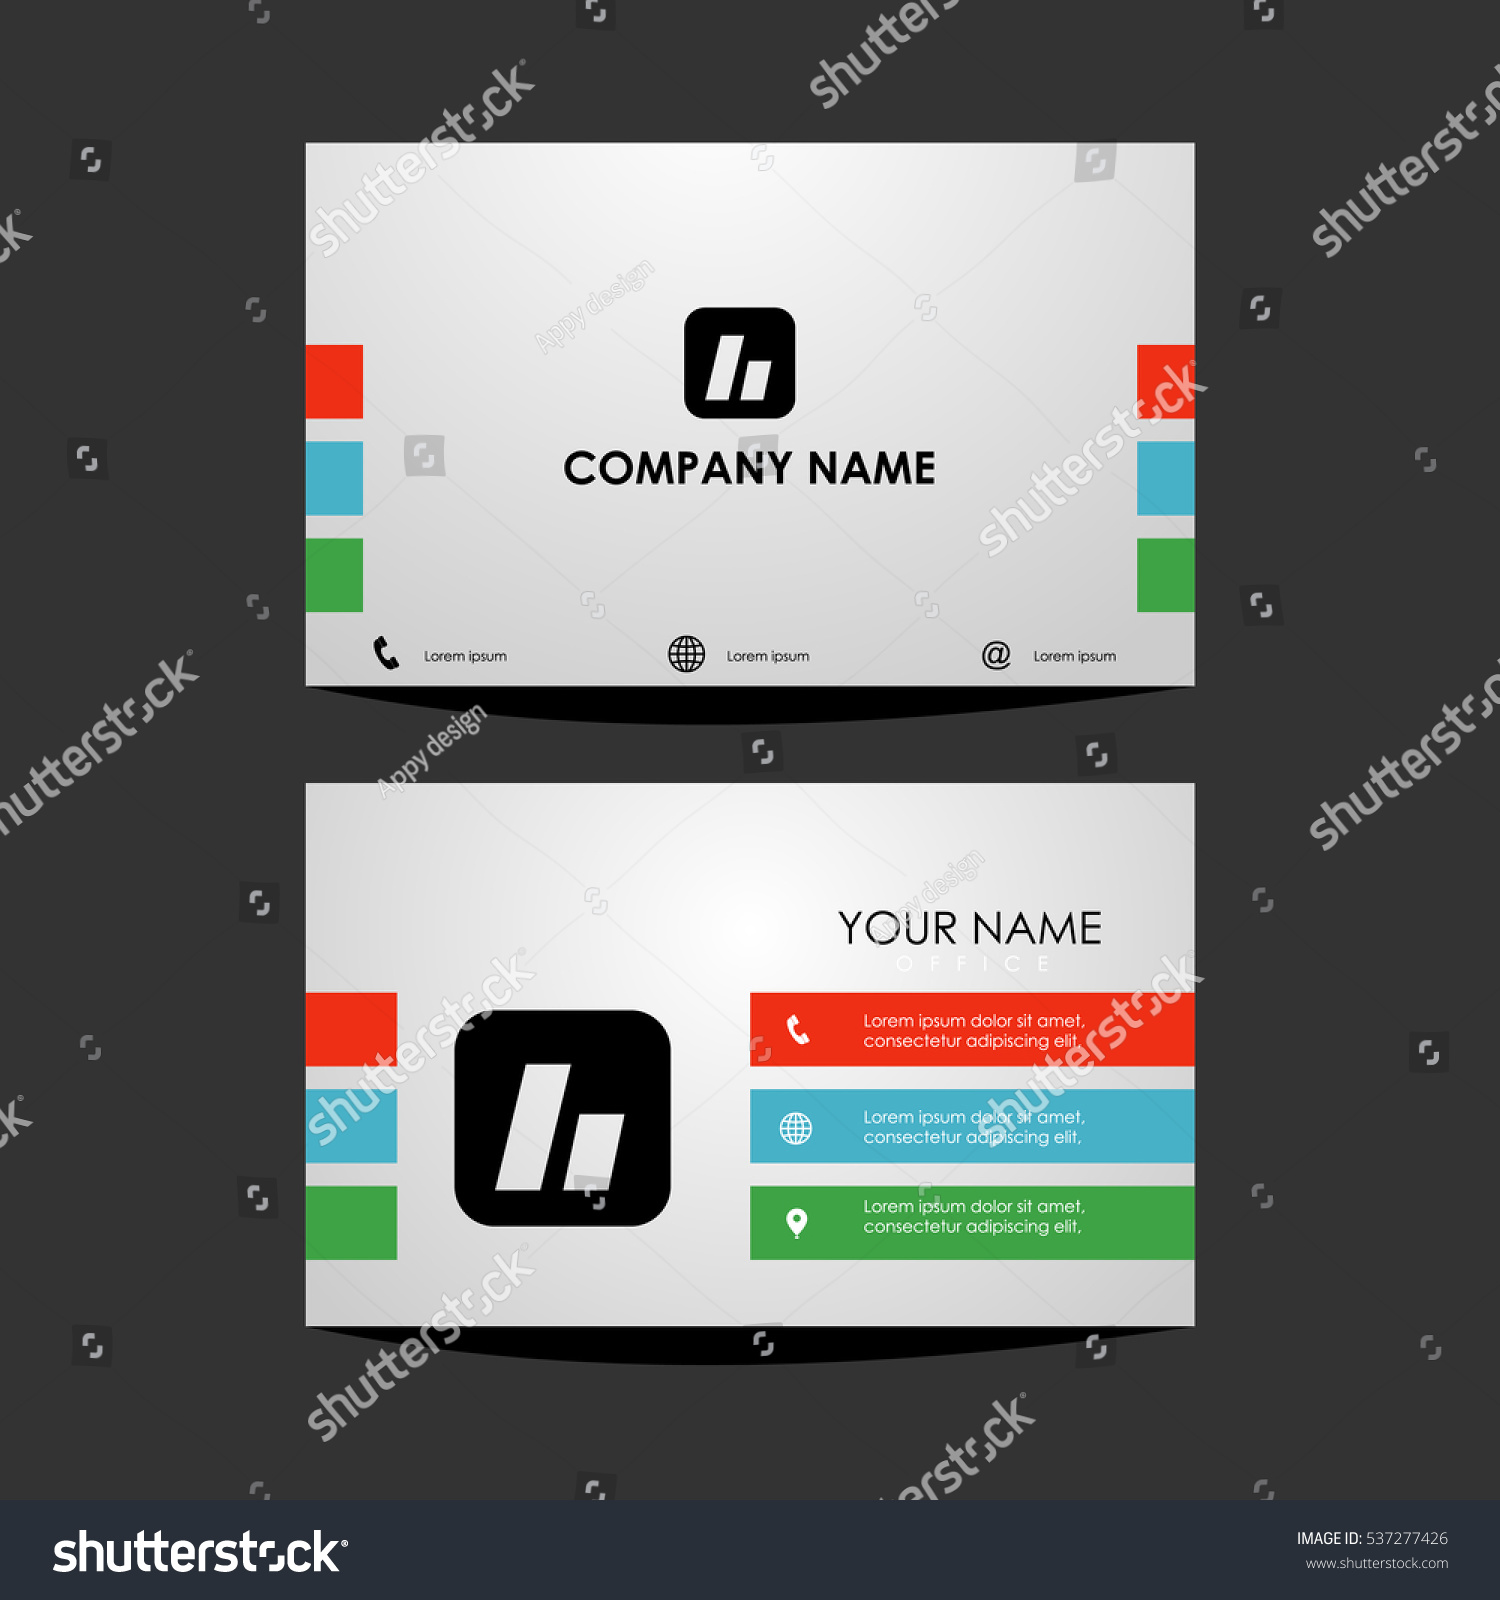 Pretty Photoshop Id Template Contemporary - Professional Resume ...